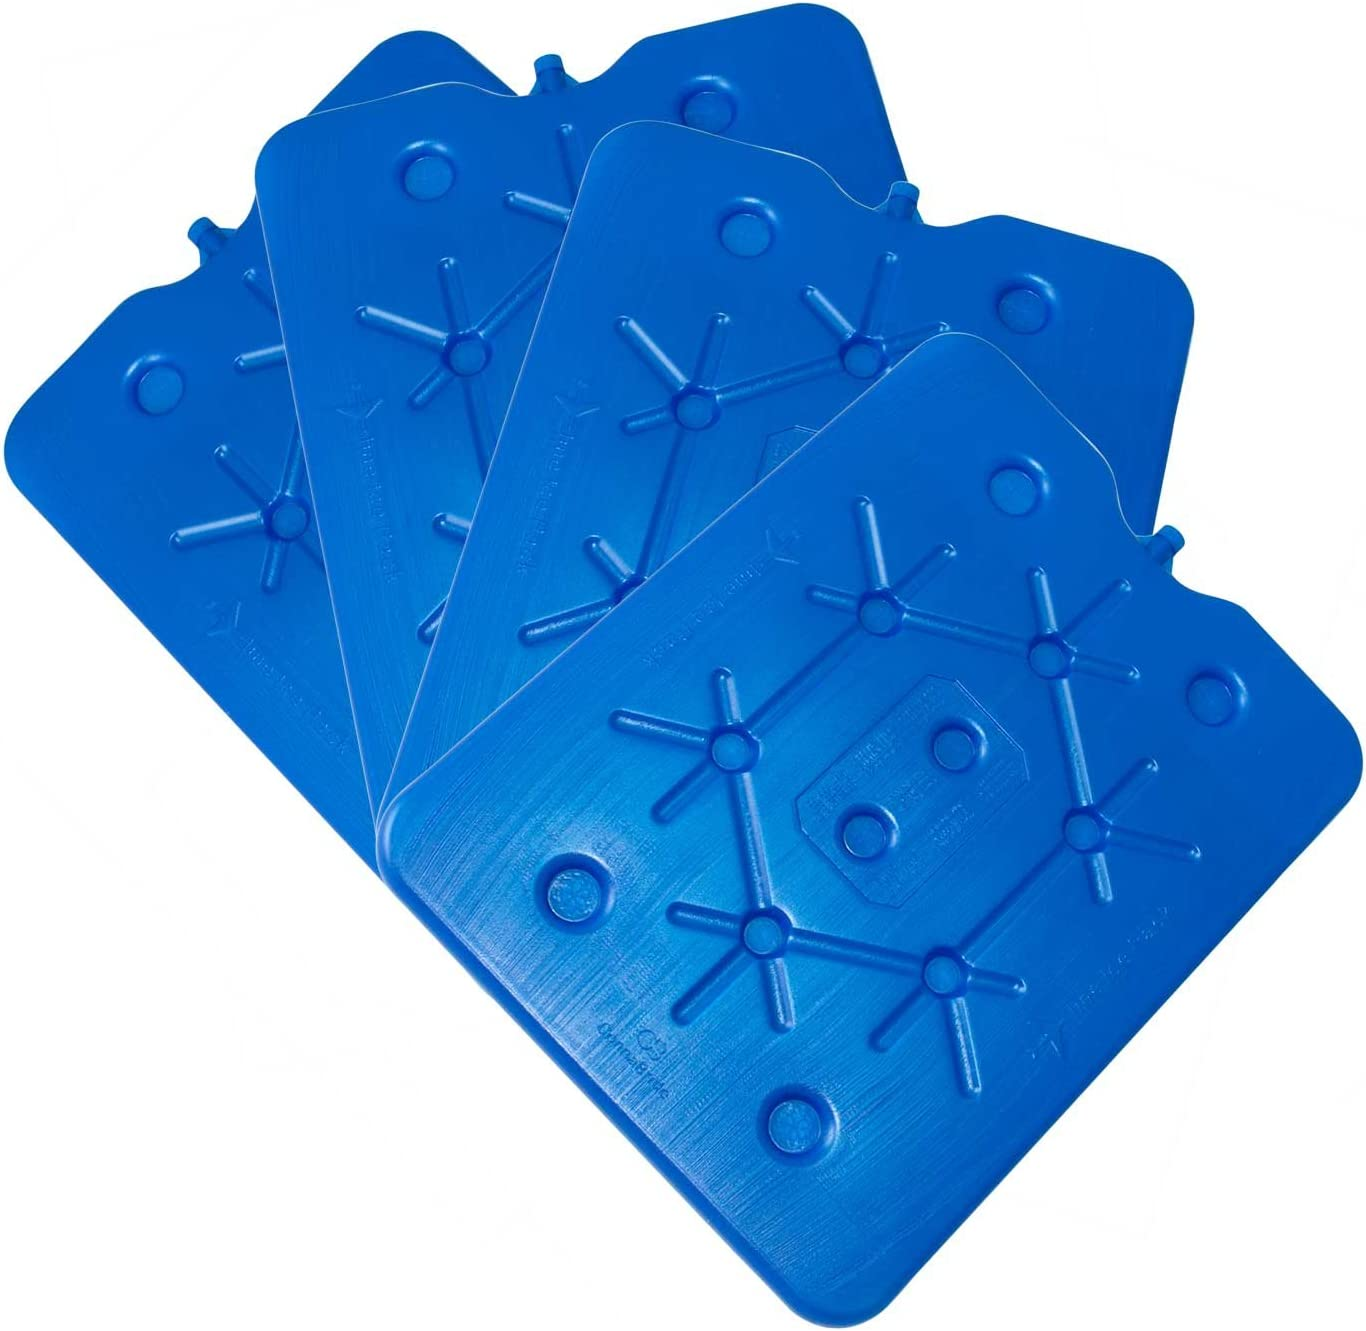 NEMT Lot de 4 accumulateurs de Froid Plats 800 ML 11 x 16,5 x 1,5 cm